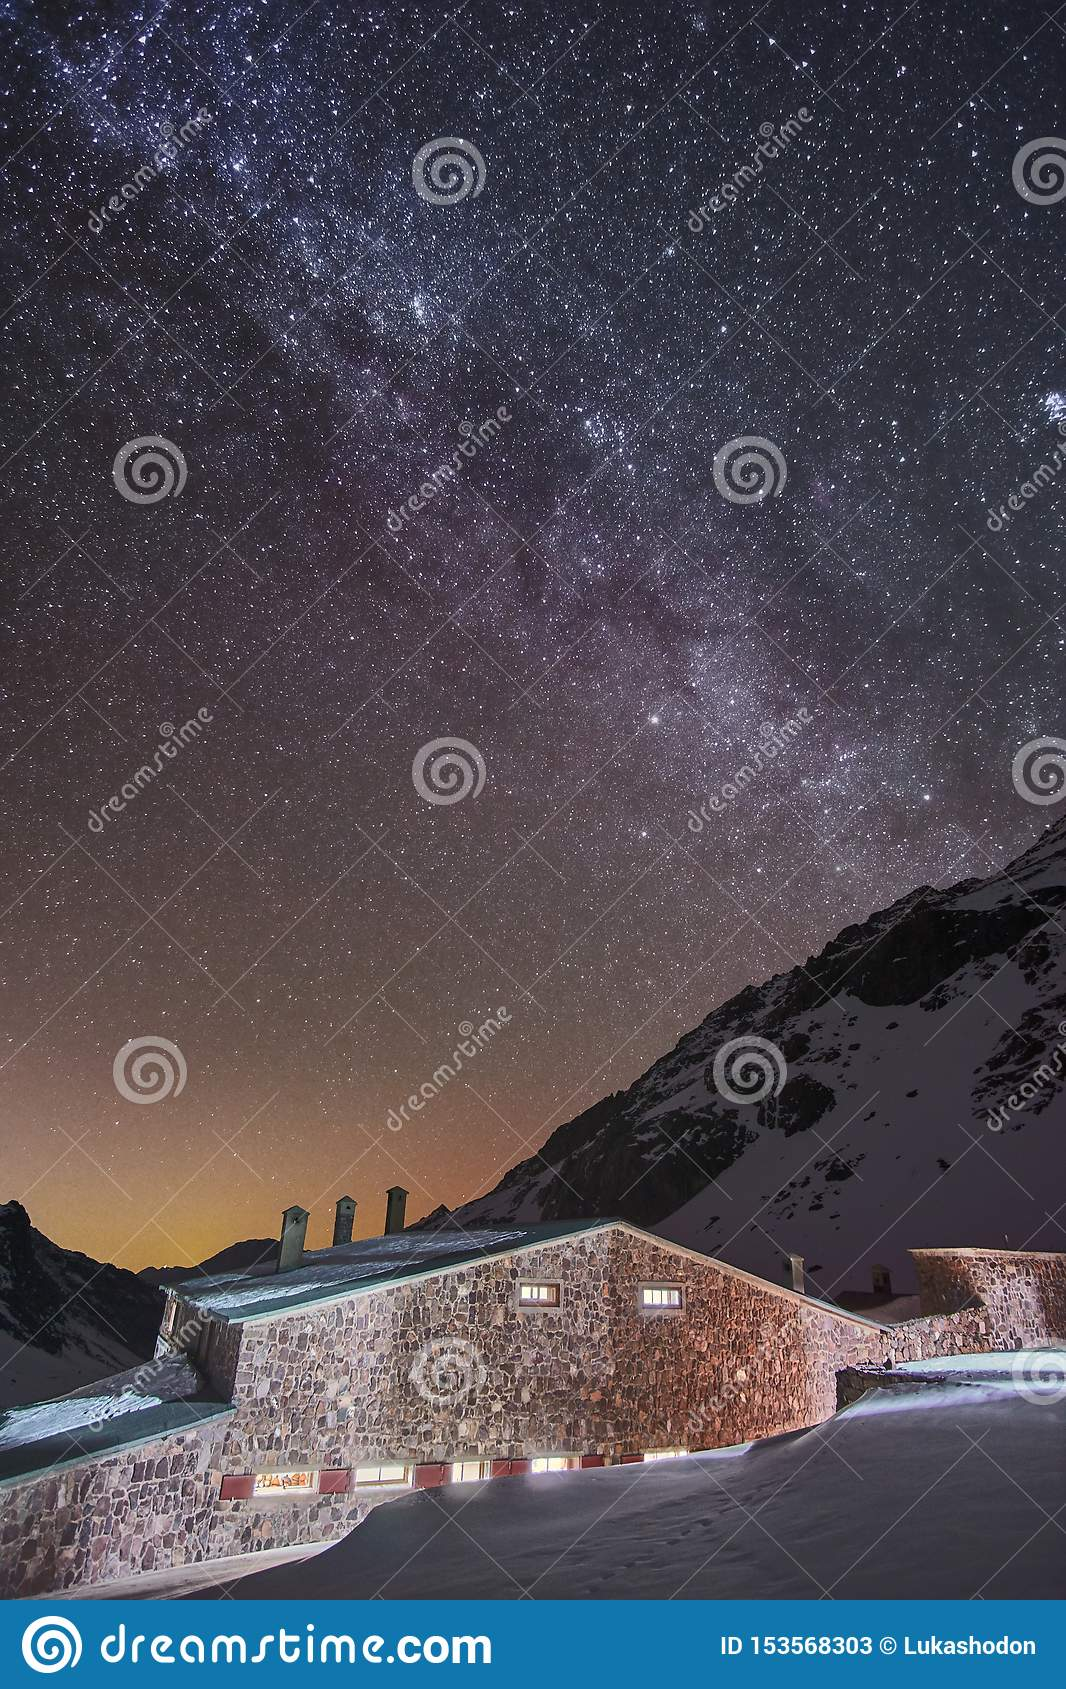 Milky way view from the mountain hut in High Atlas mountains, Morocco